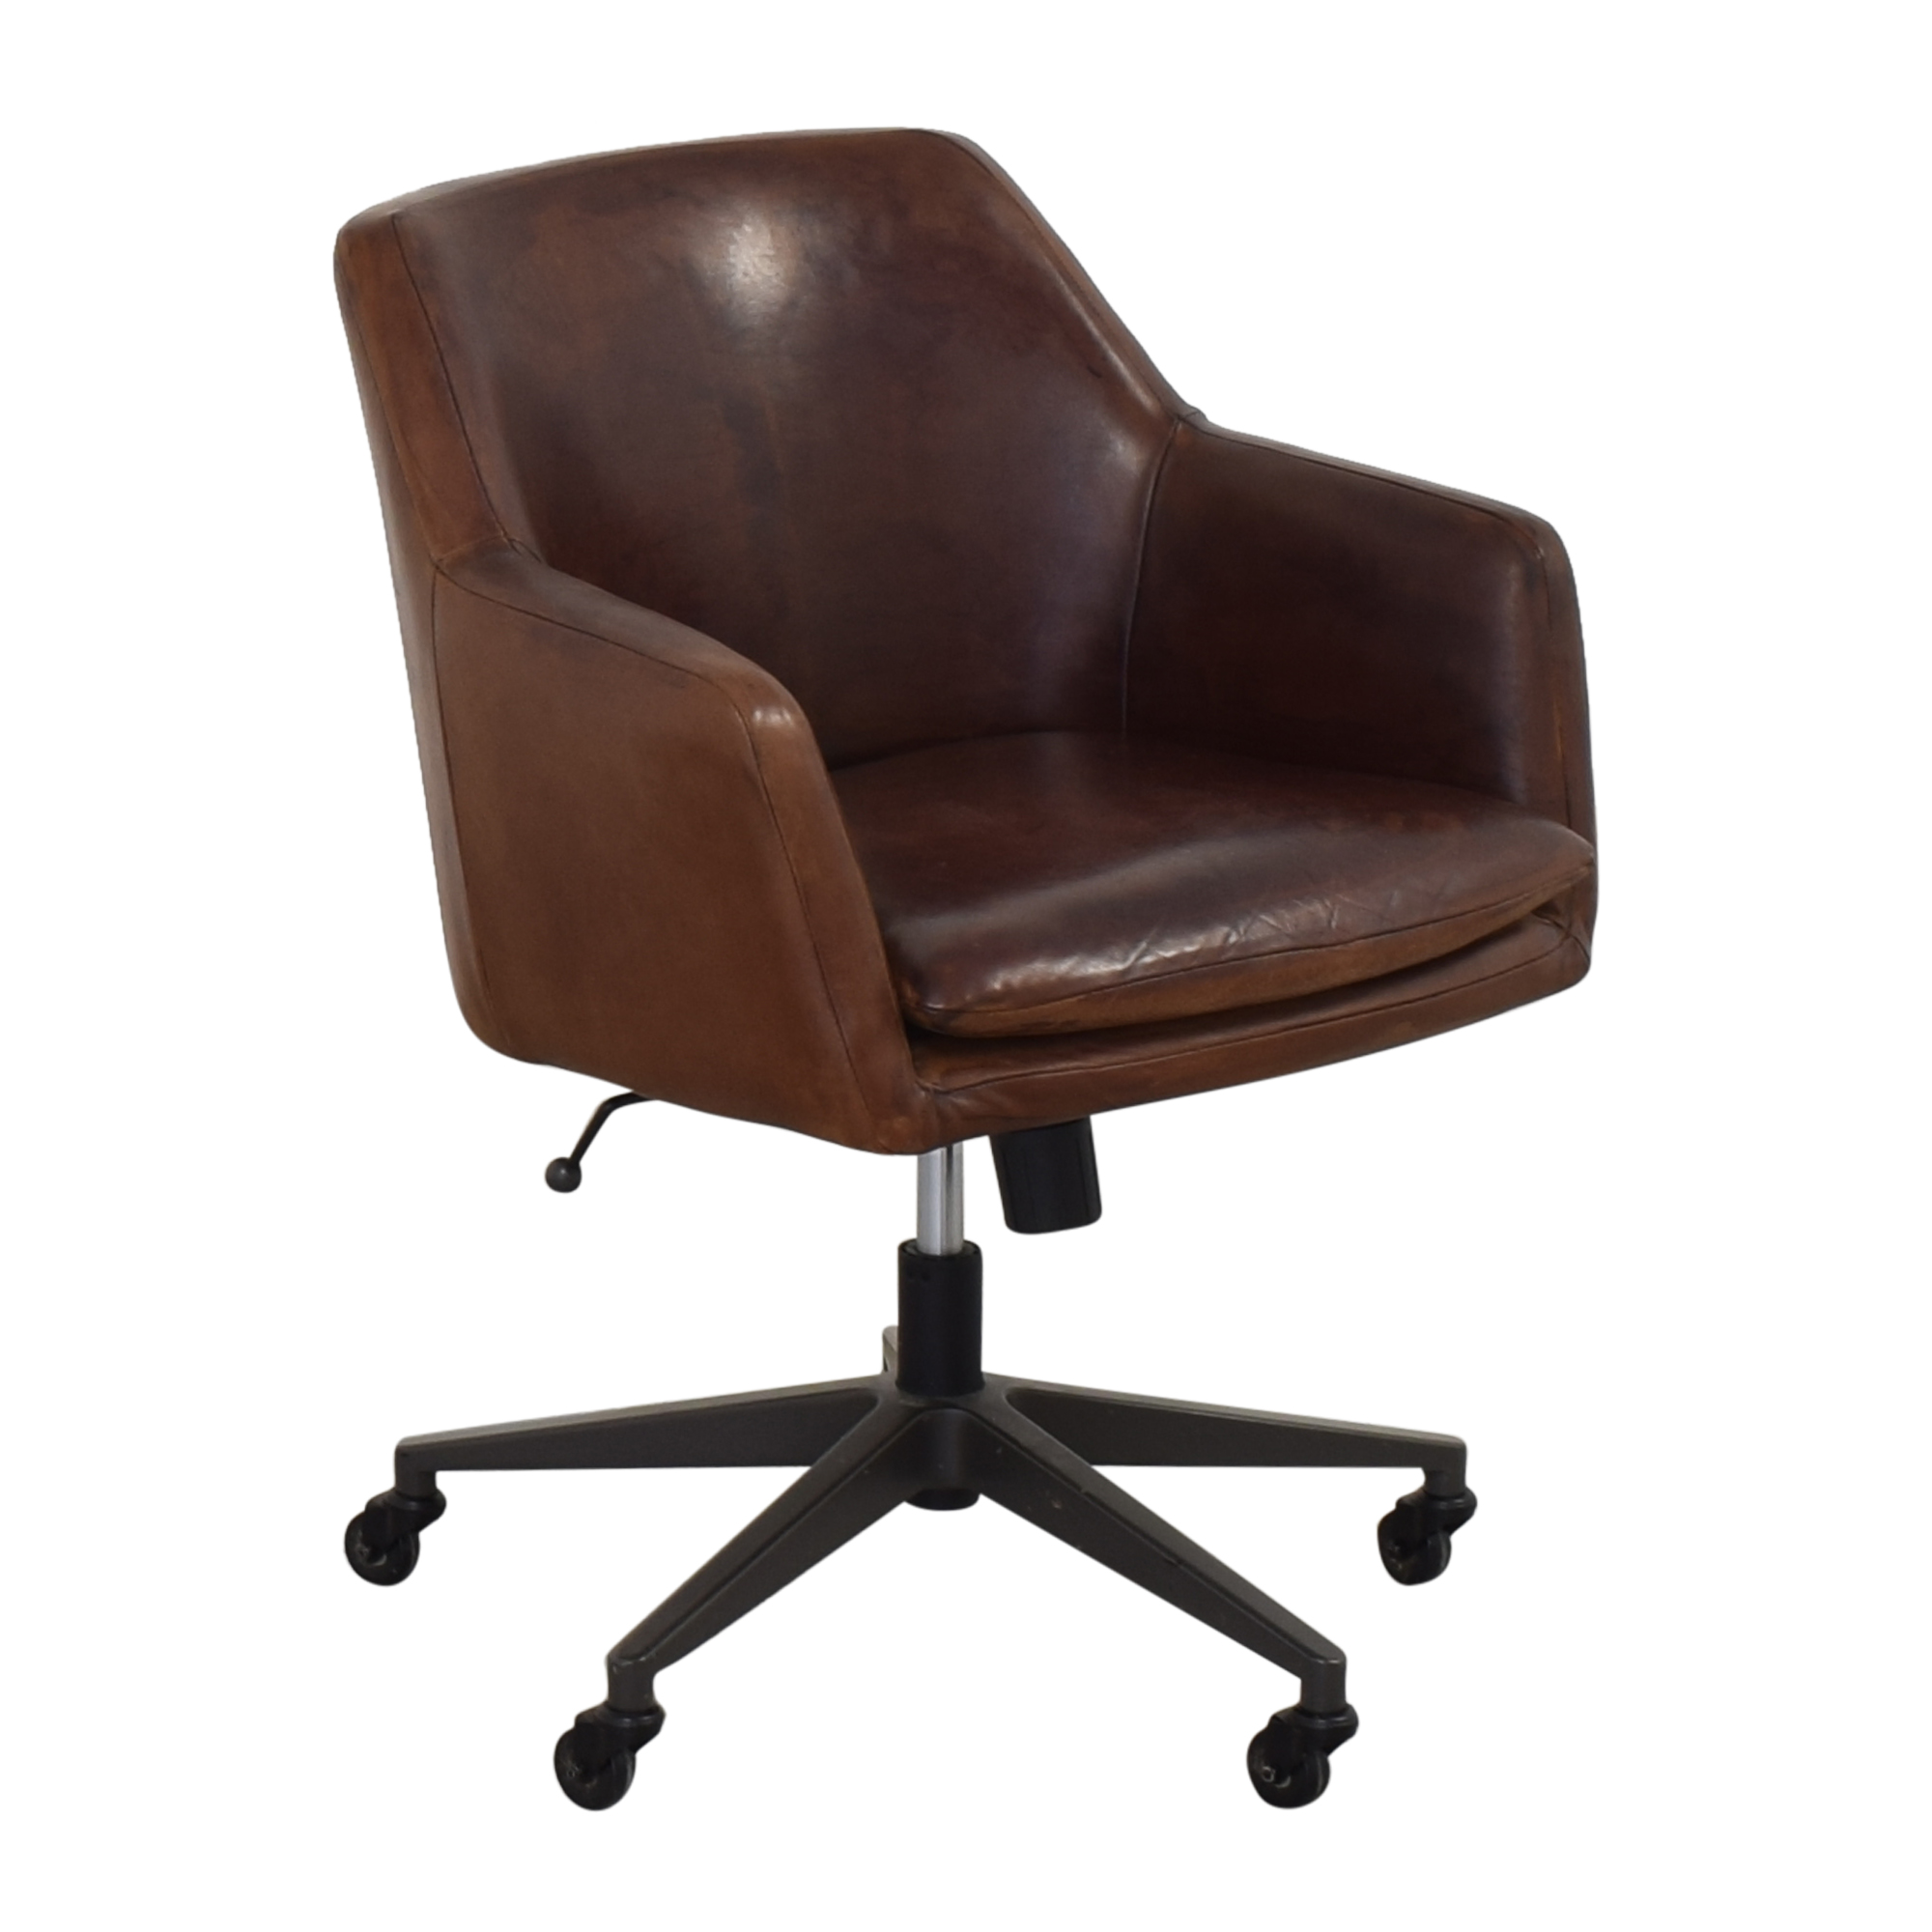 West Elm Helvatica Leather Office Chair / Home Office Chairs